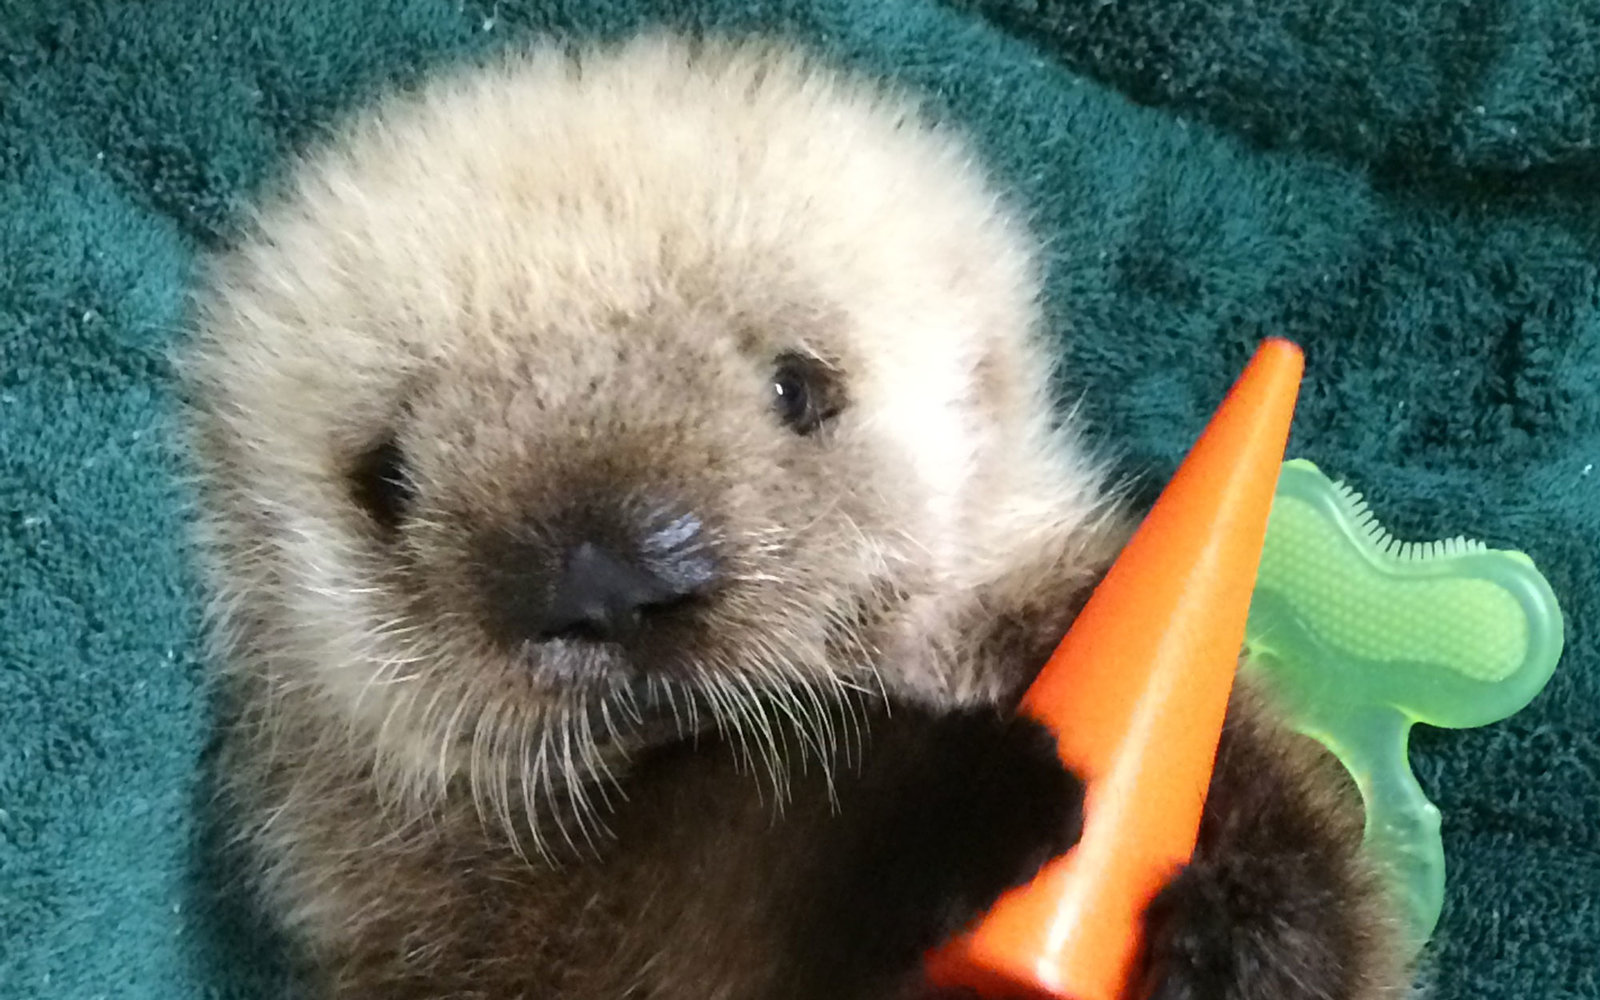 This Week in Cute Zoo Animal Births: a Sea Otter Transfer ...